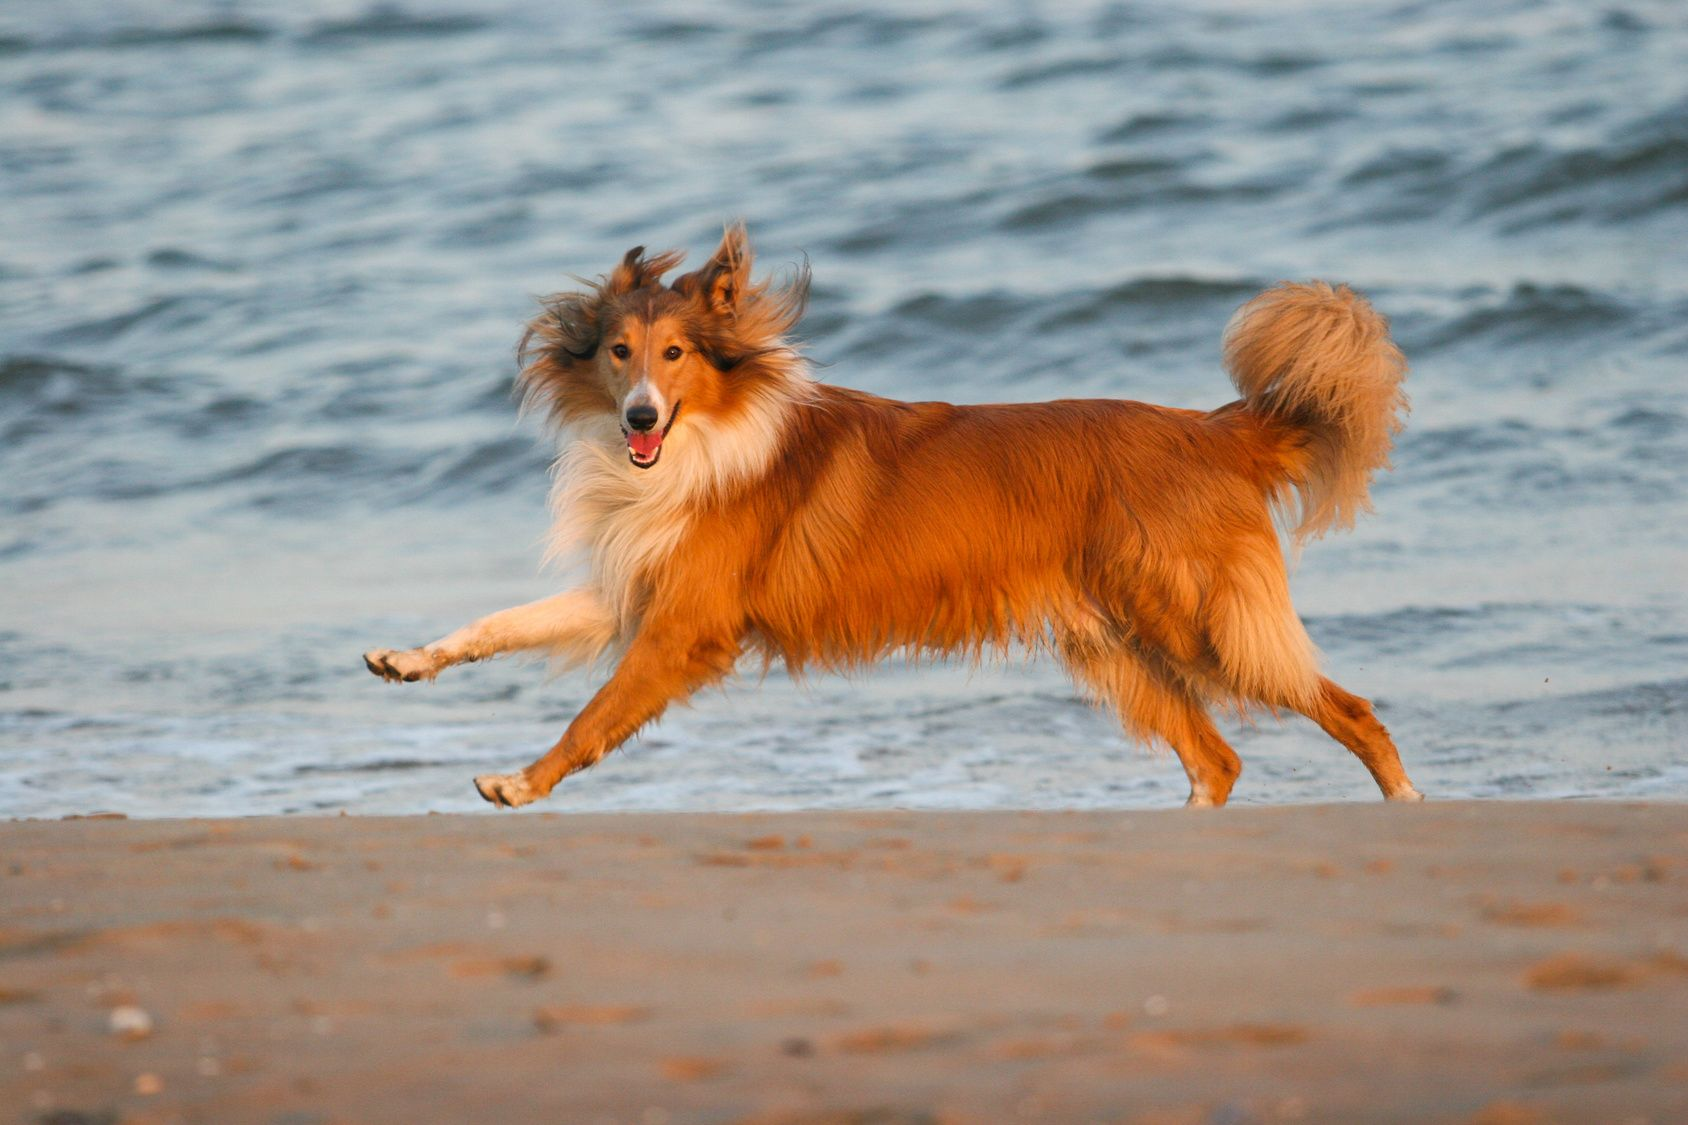 Purebred Rough Collie dog portrait  in outdoors